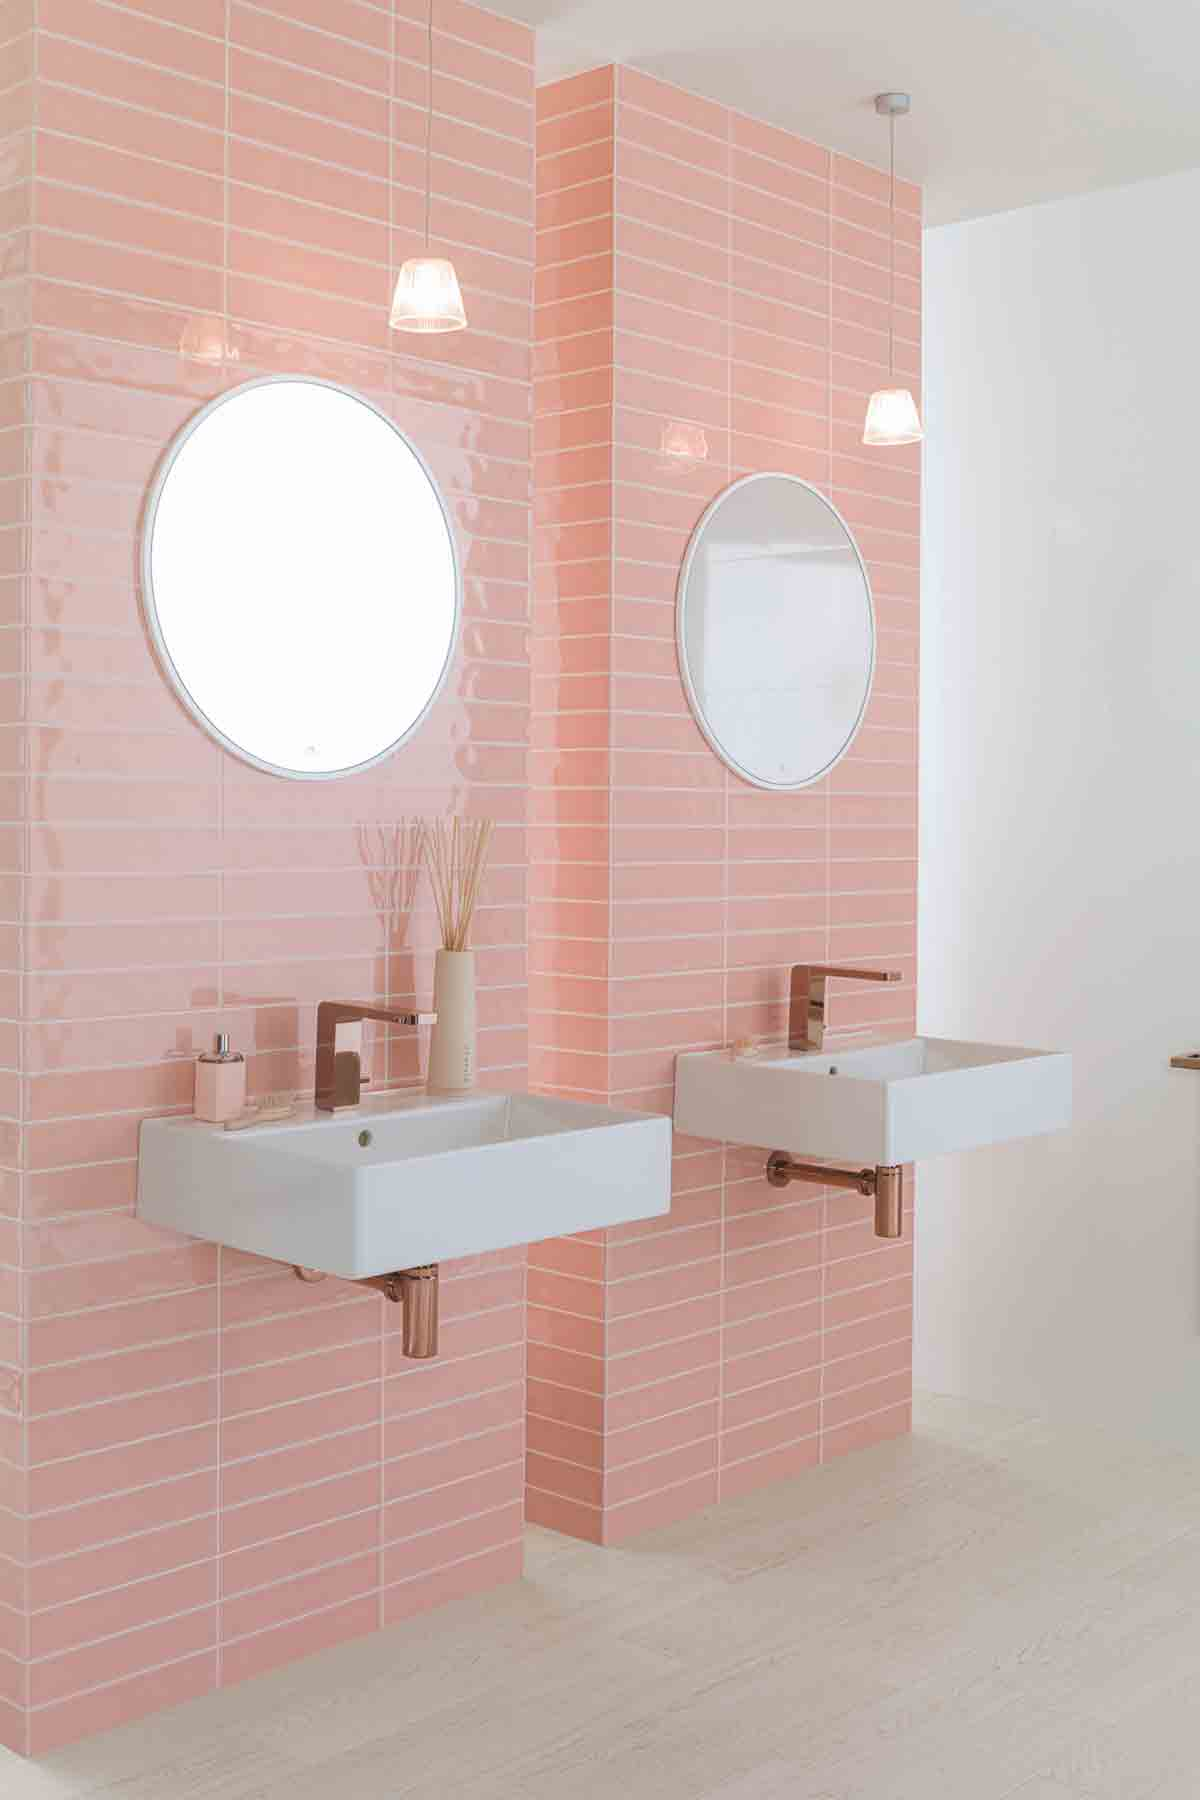 Tile For Bathroom The Latest Bathroom Trends And Bathroom Designs For 2019